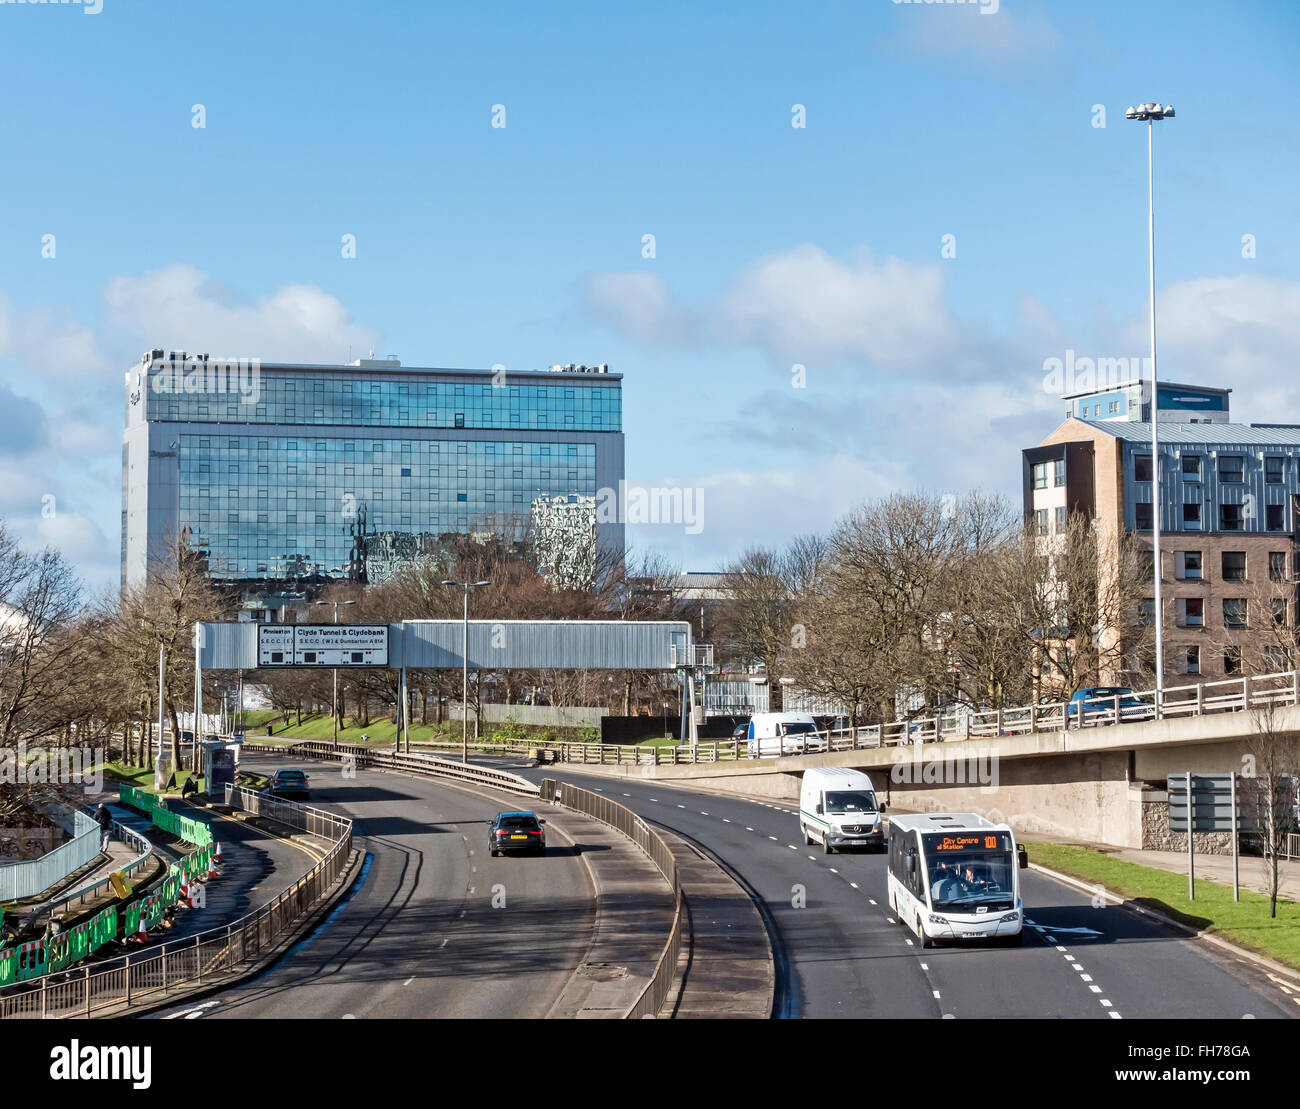 Skypark with office, retail and studio accommodation in Finnieston Glasgow Scotland with Clydeside Expressway in - Stock Image